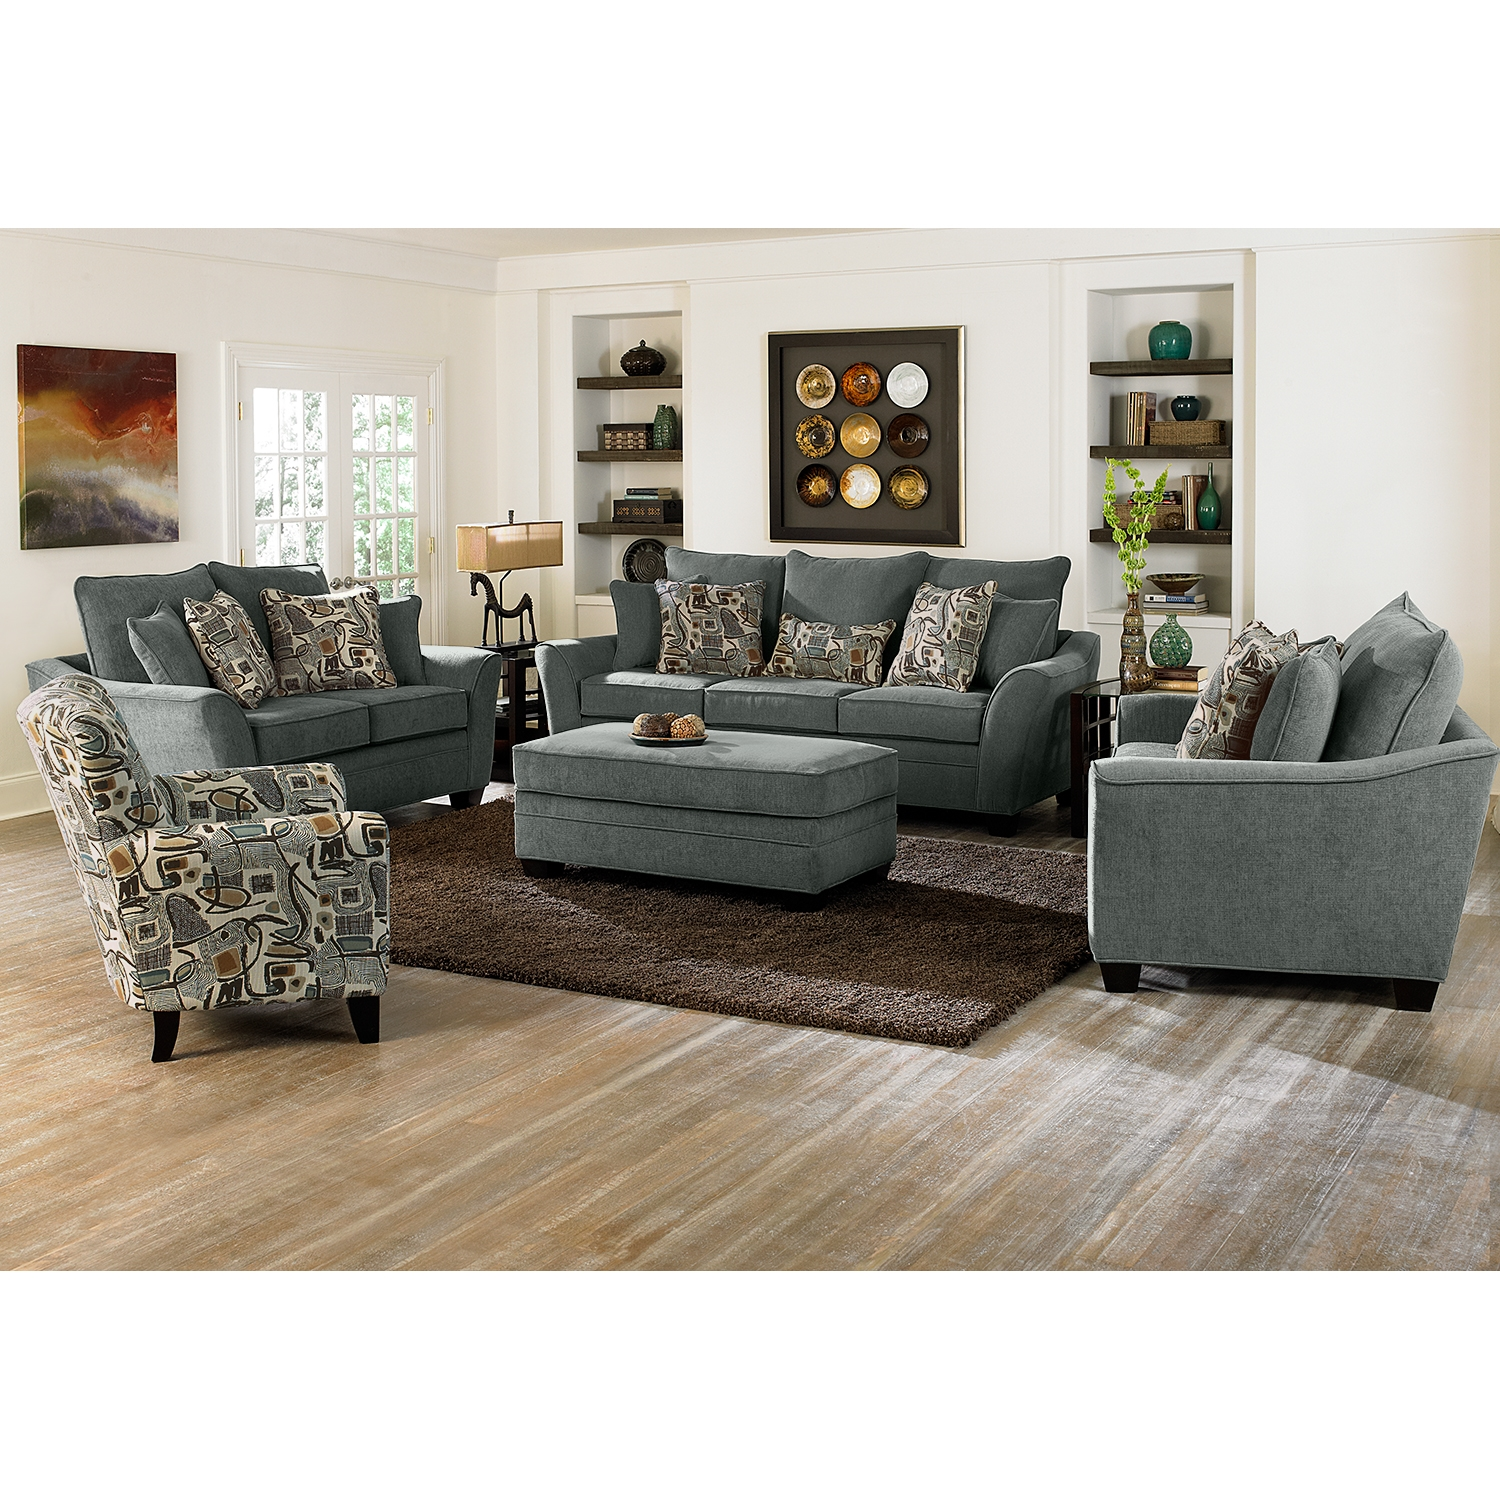 living room chair broda parts and ottoman